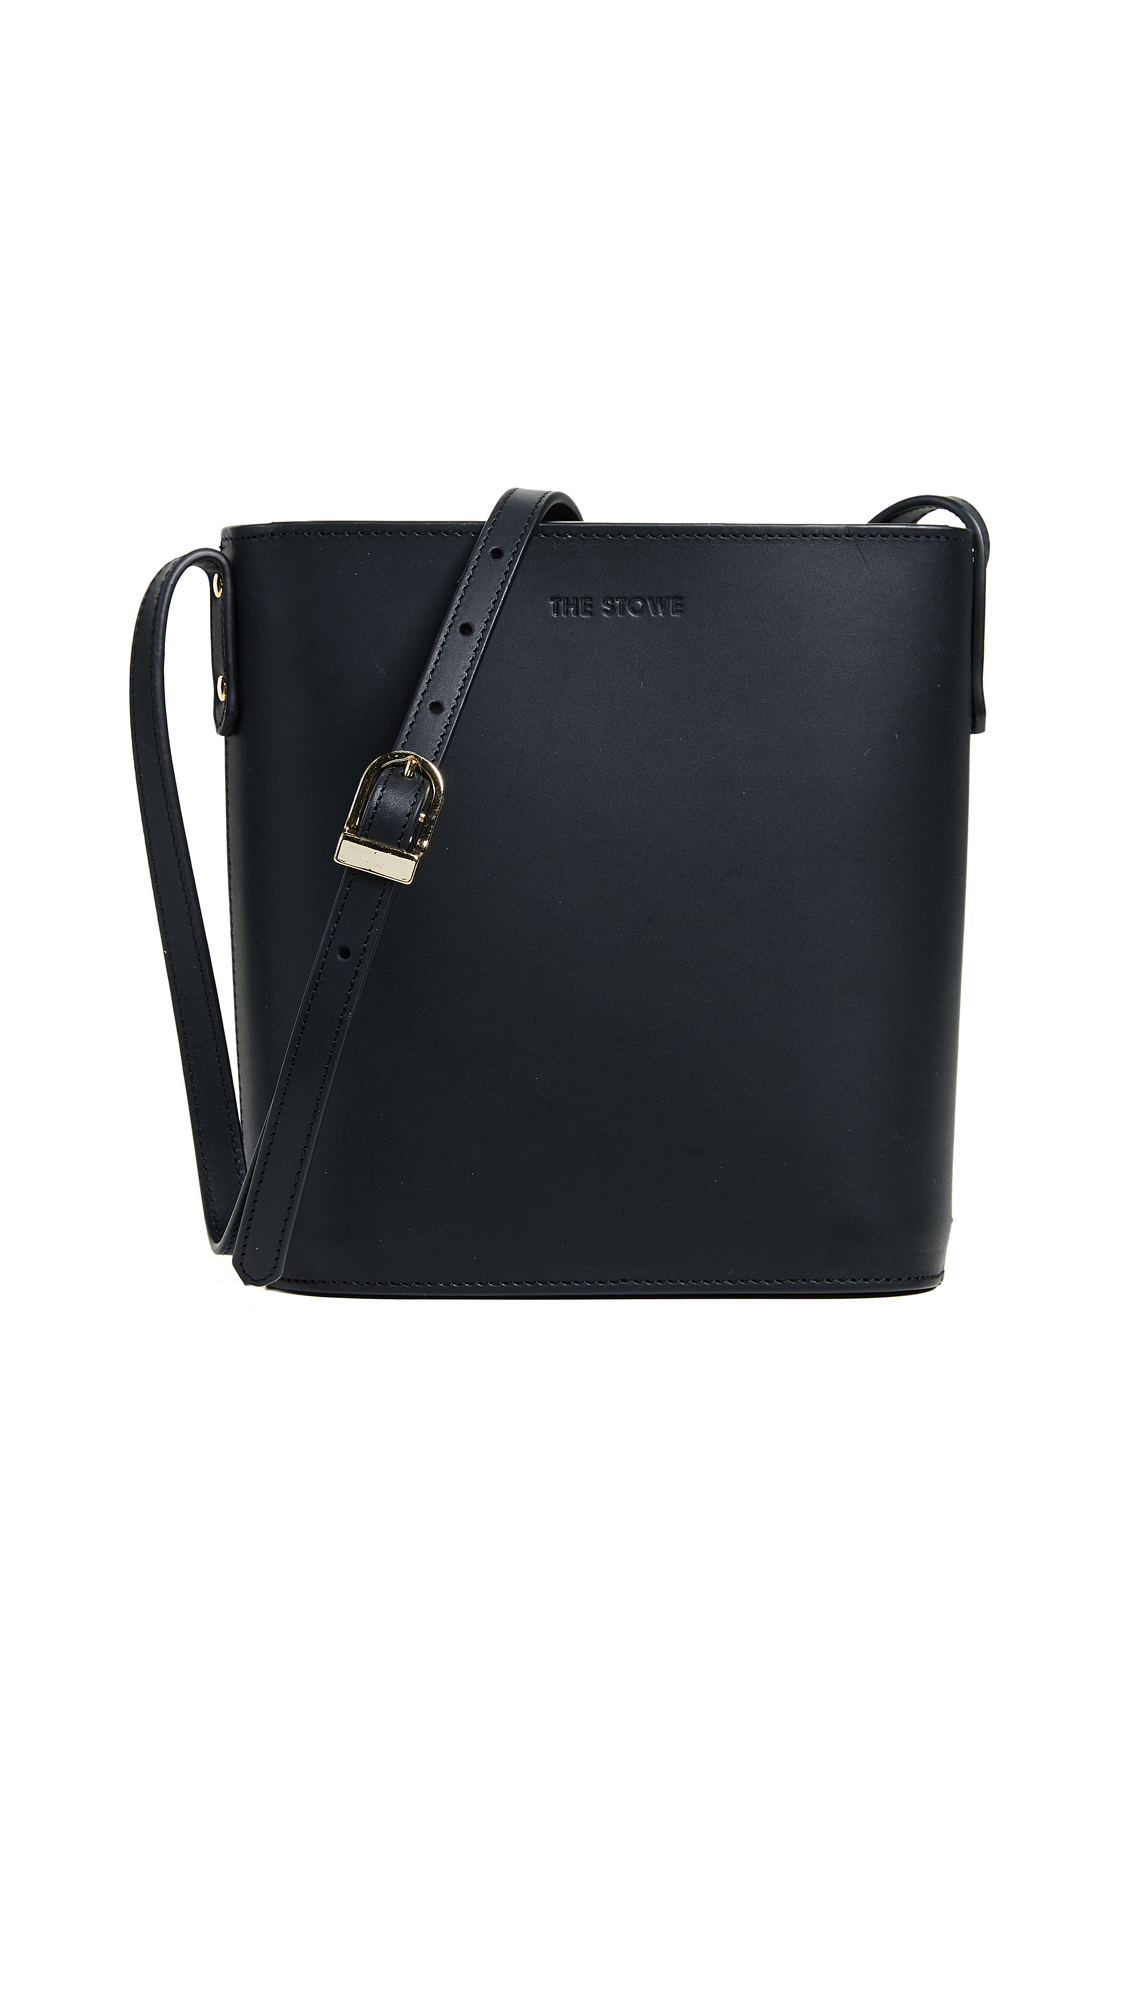 THE STOWE NELLIE CROSS BODY BAG